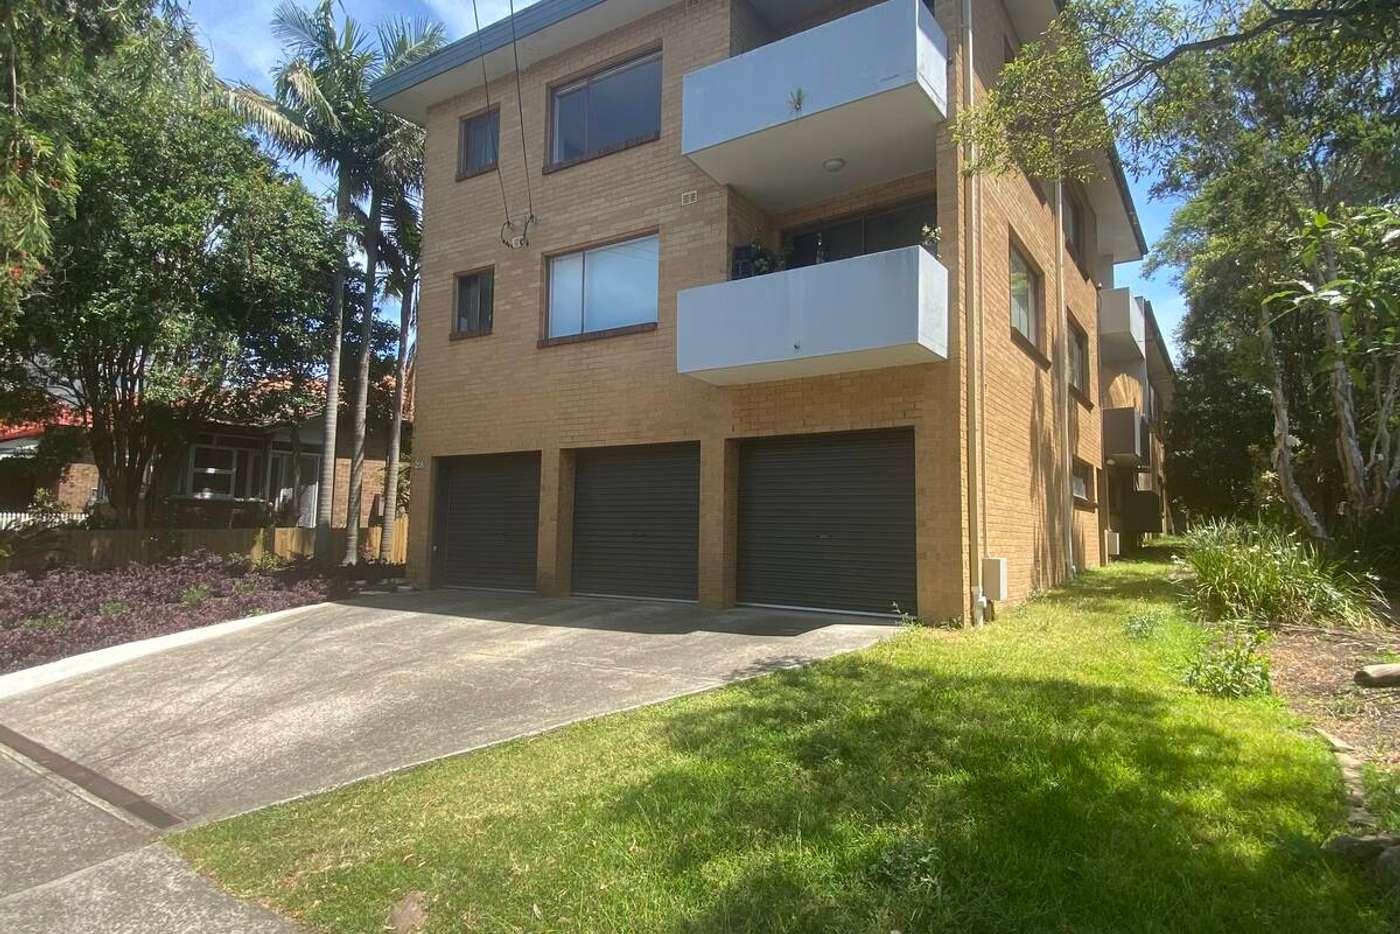 Main view of Homely apartment listing, 3/218 Ben Boyd Road, Neutral Bay NSW 2089